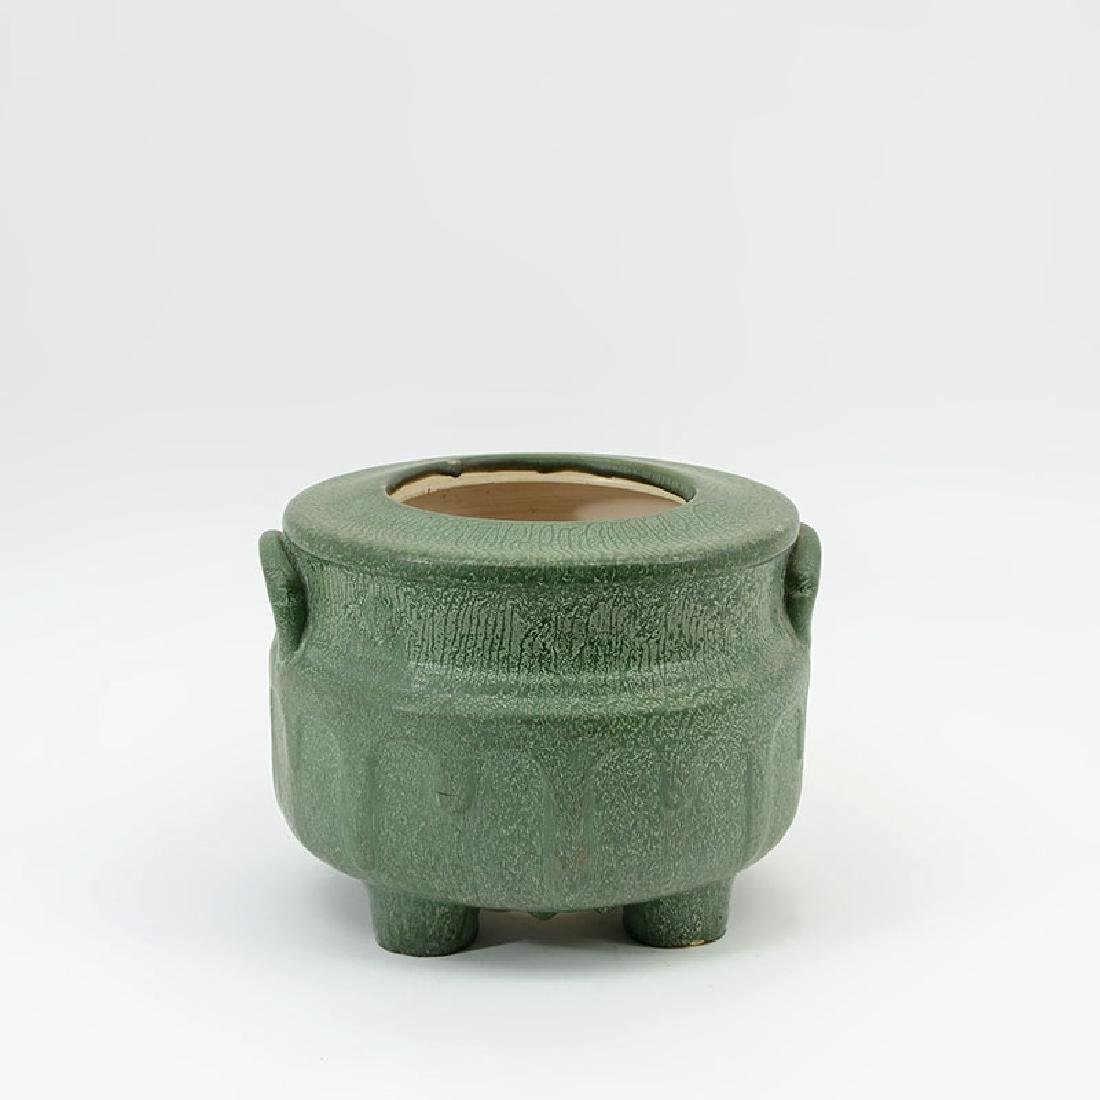 HAMPSHIRE POTTERY MATTE GREEN PLANTER / JARDINIERE